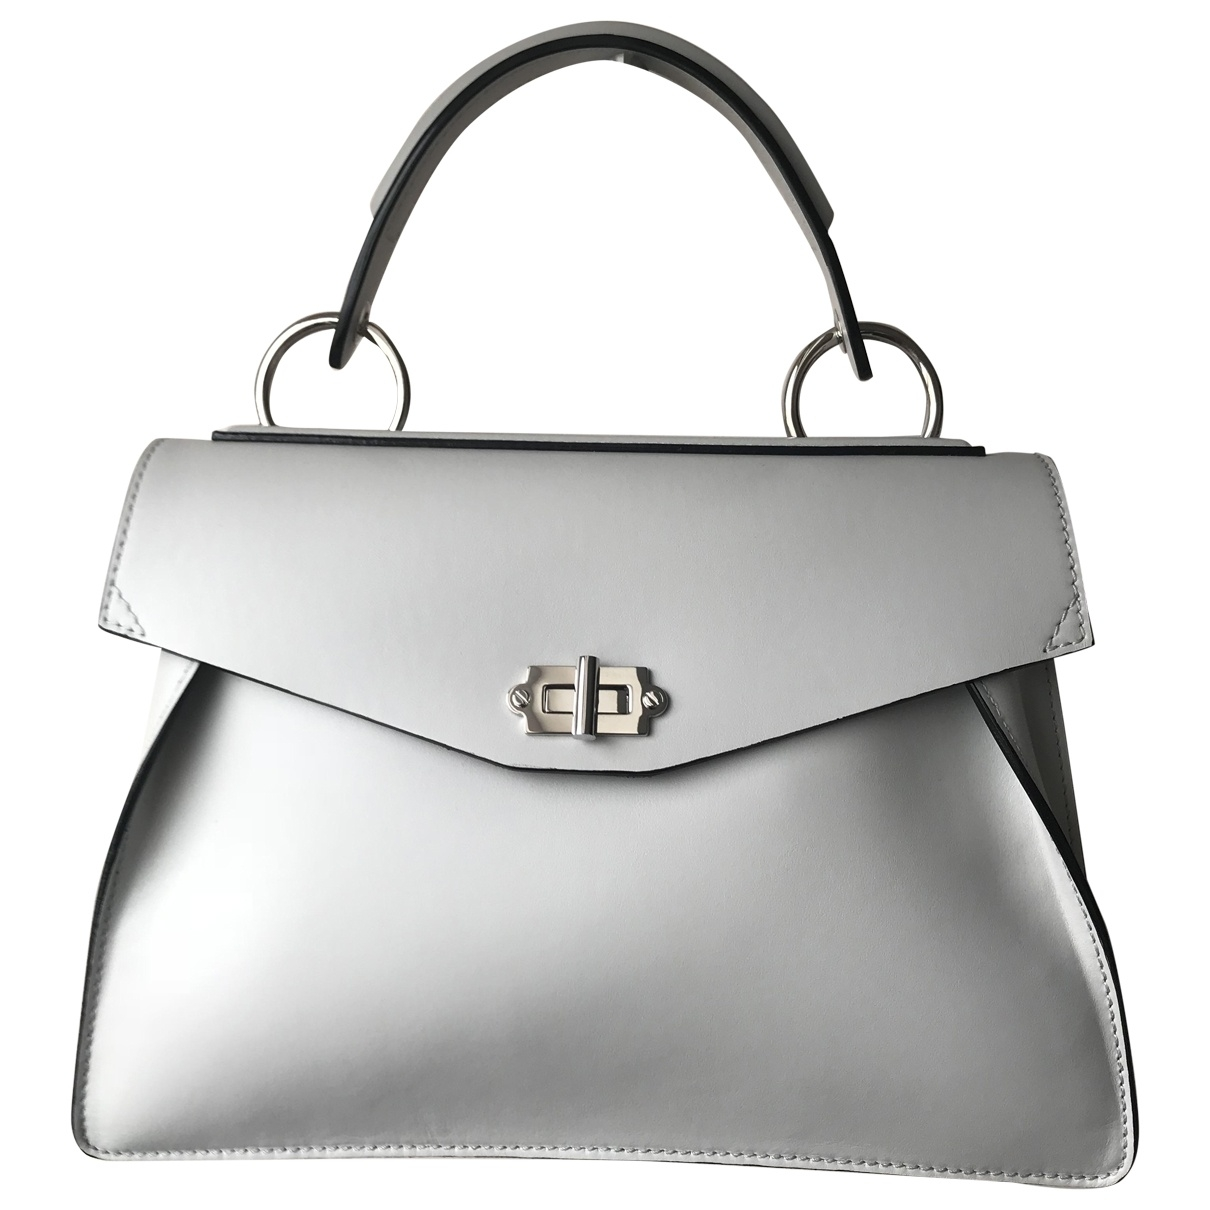 Proenza Schouler Hava White Leather handbag for Women \N